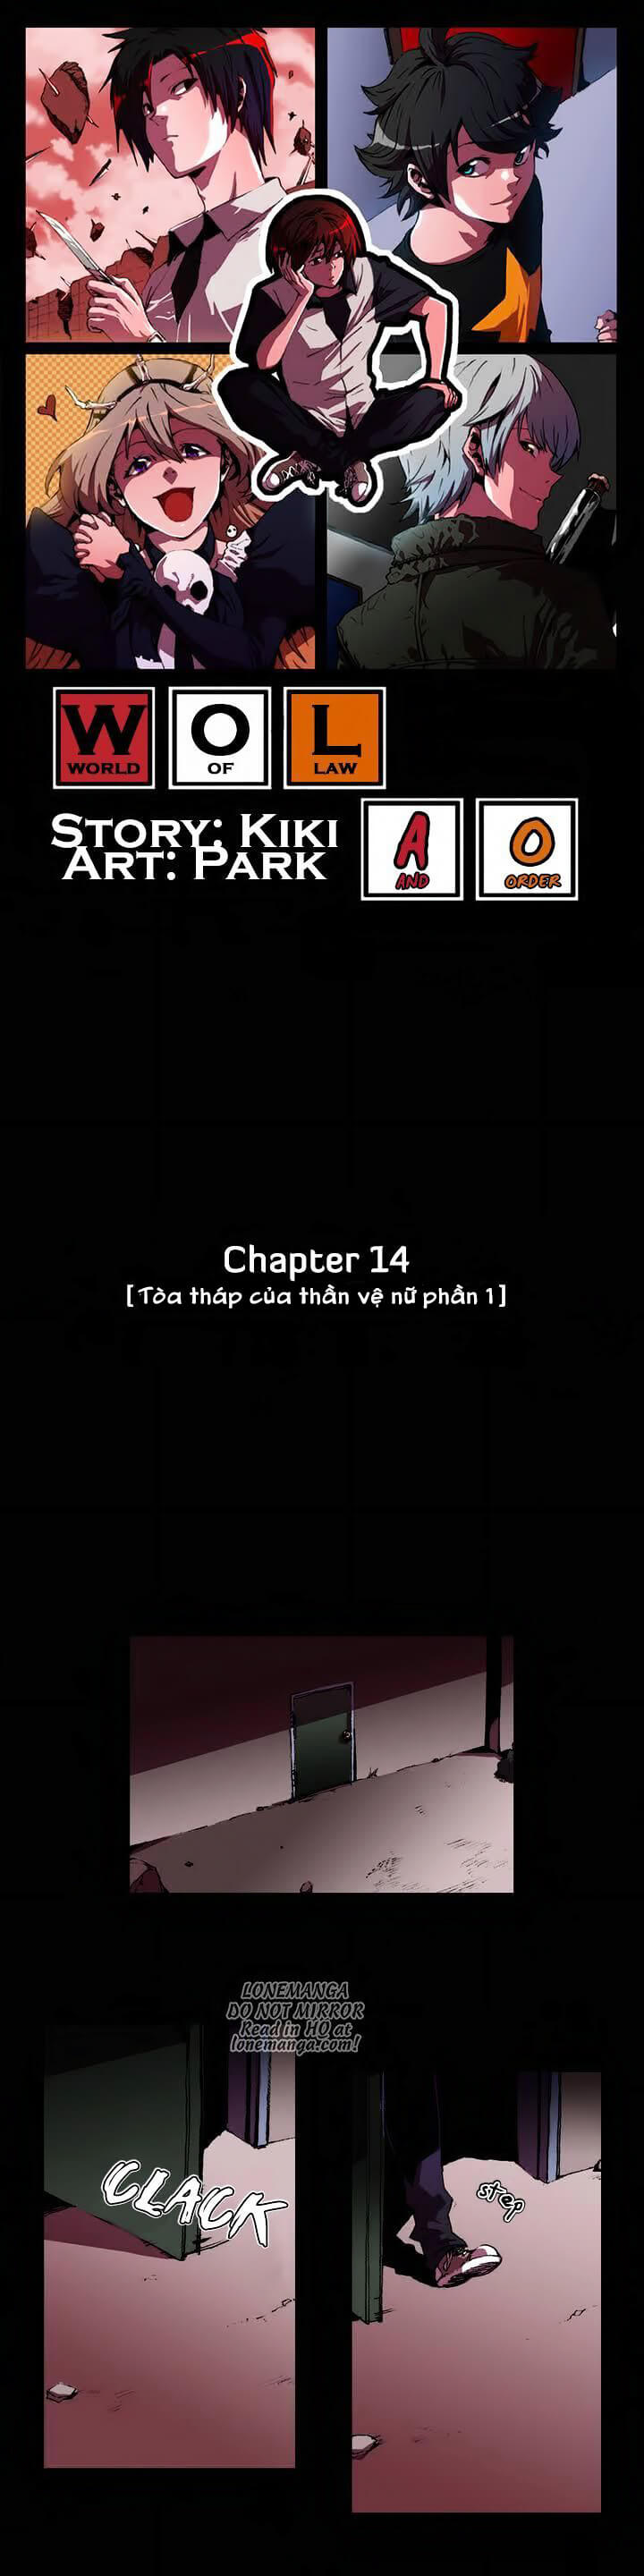 World of Law and Order Chap 14 - Next Chap 15